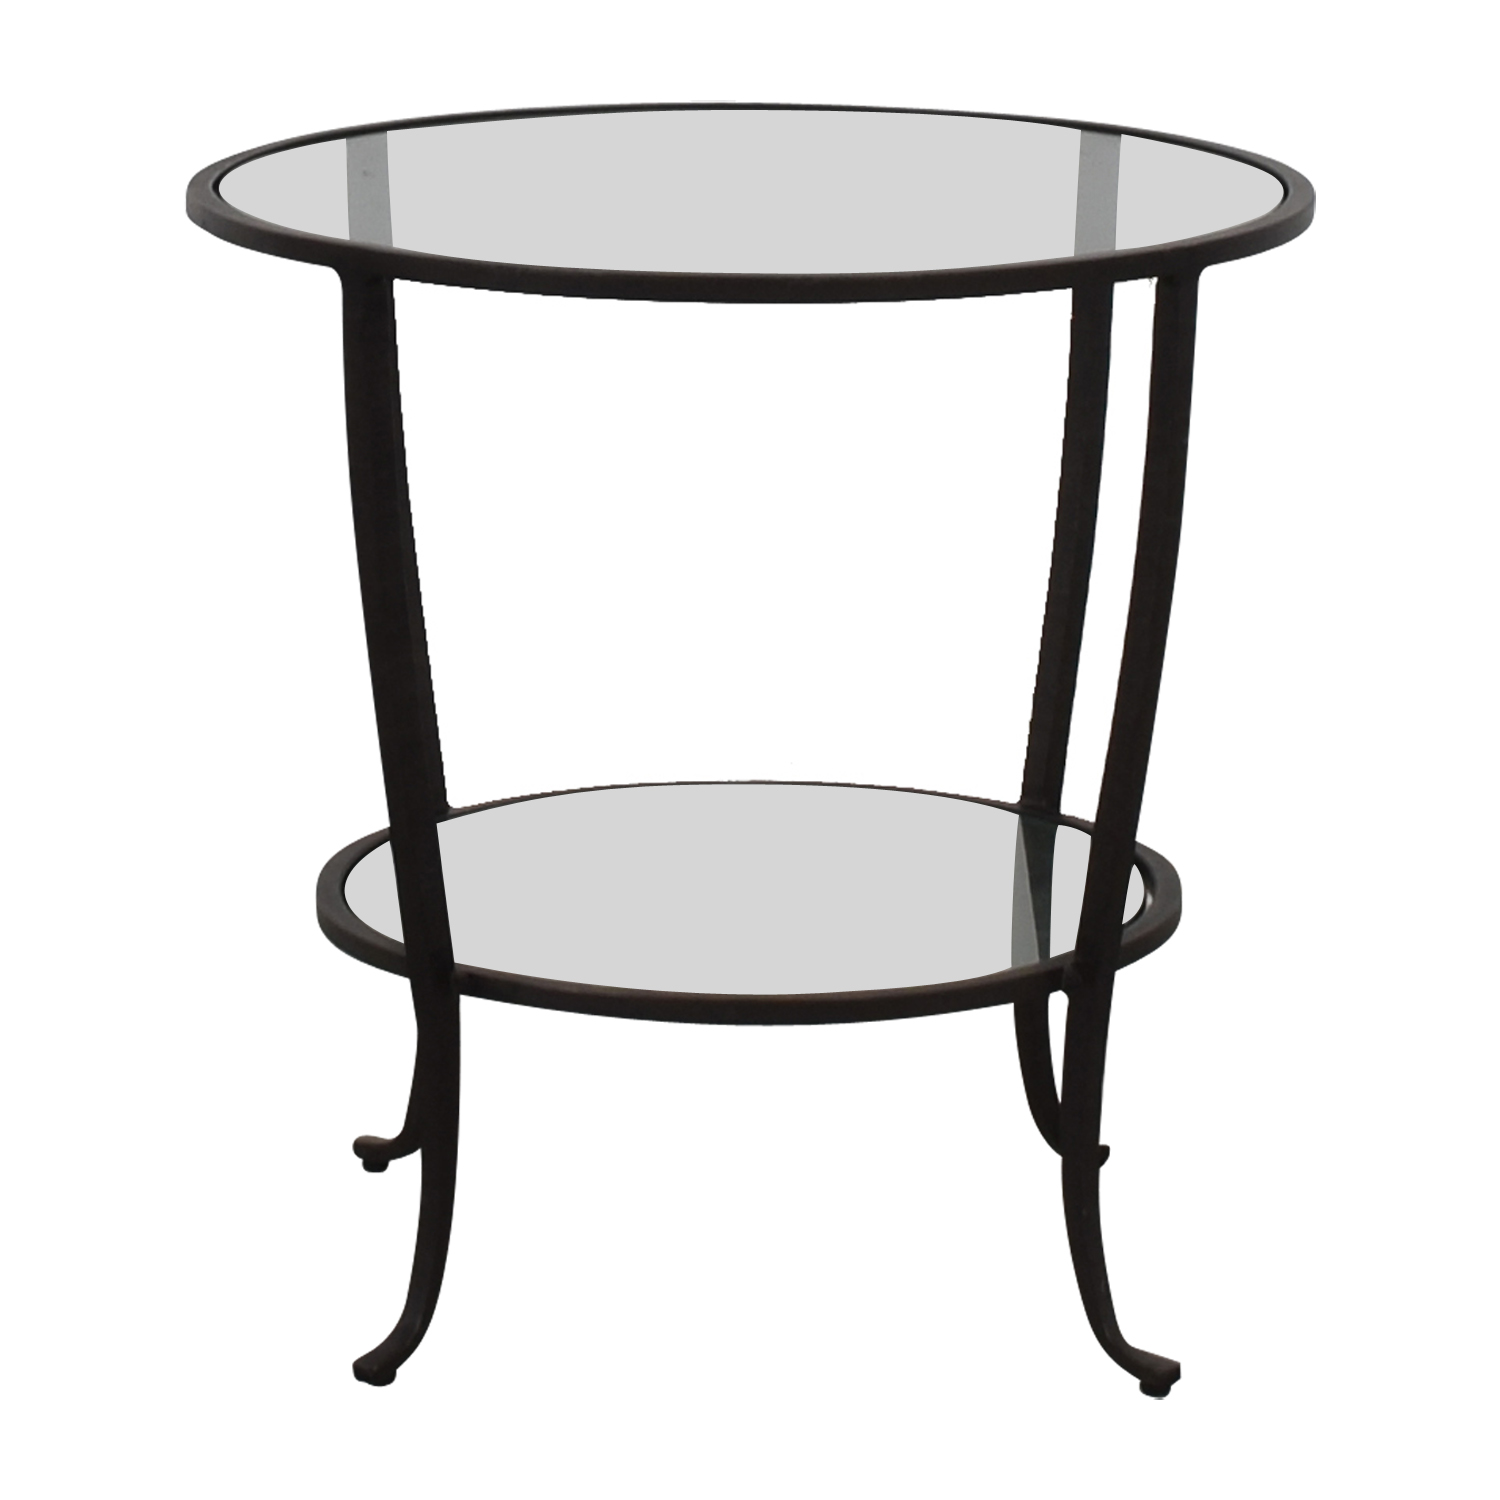 Pottery Barn Pottery Barn Round Metal & Glass Table nj